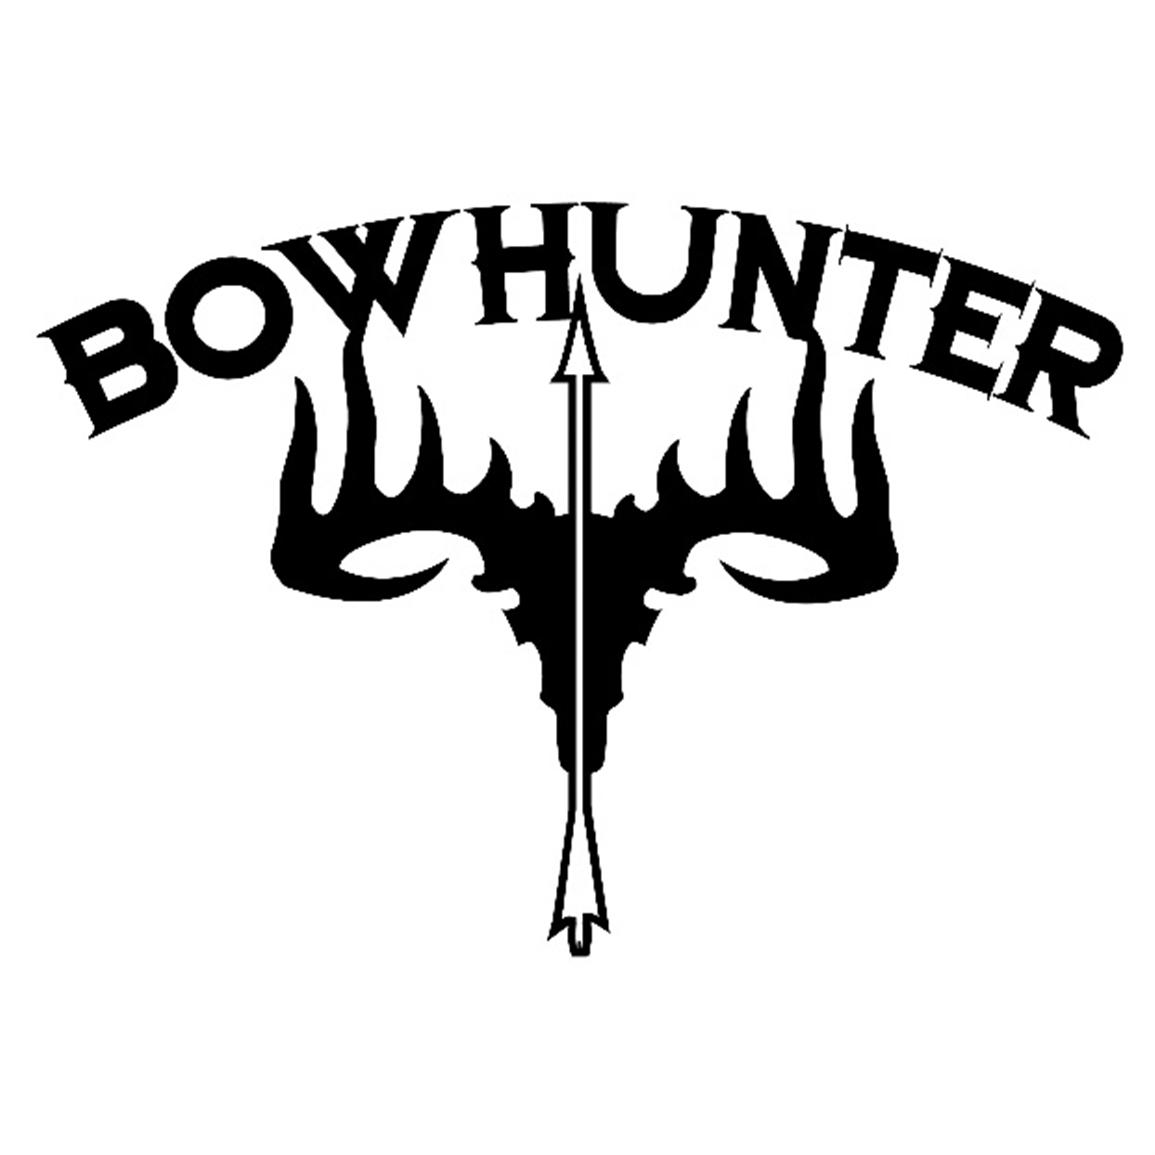 1155x1155 Images For Gt Bow Hunter Silhouette Clipart Images Silhouettes